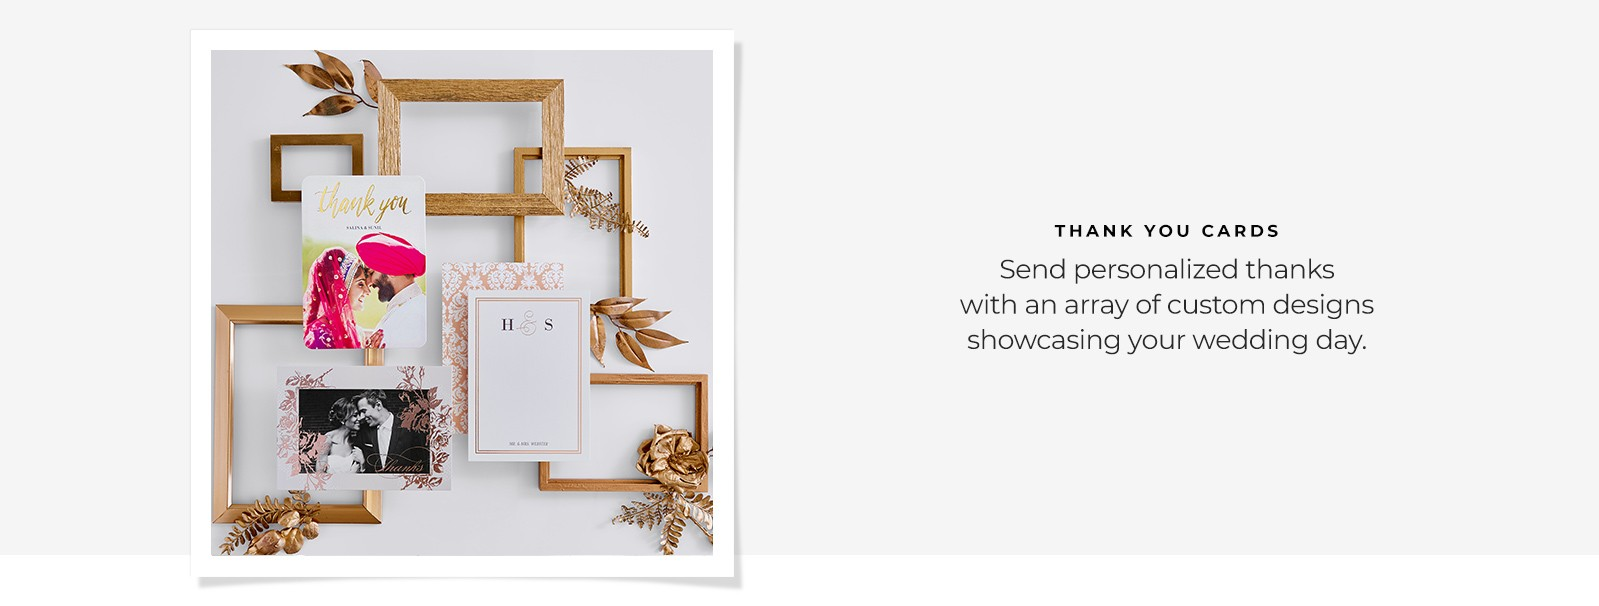 wedding thank you cards in a variety of styles